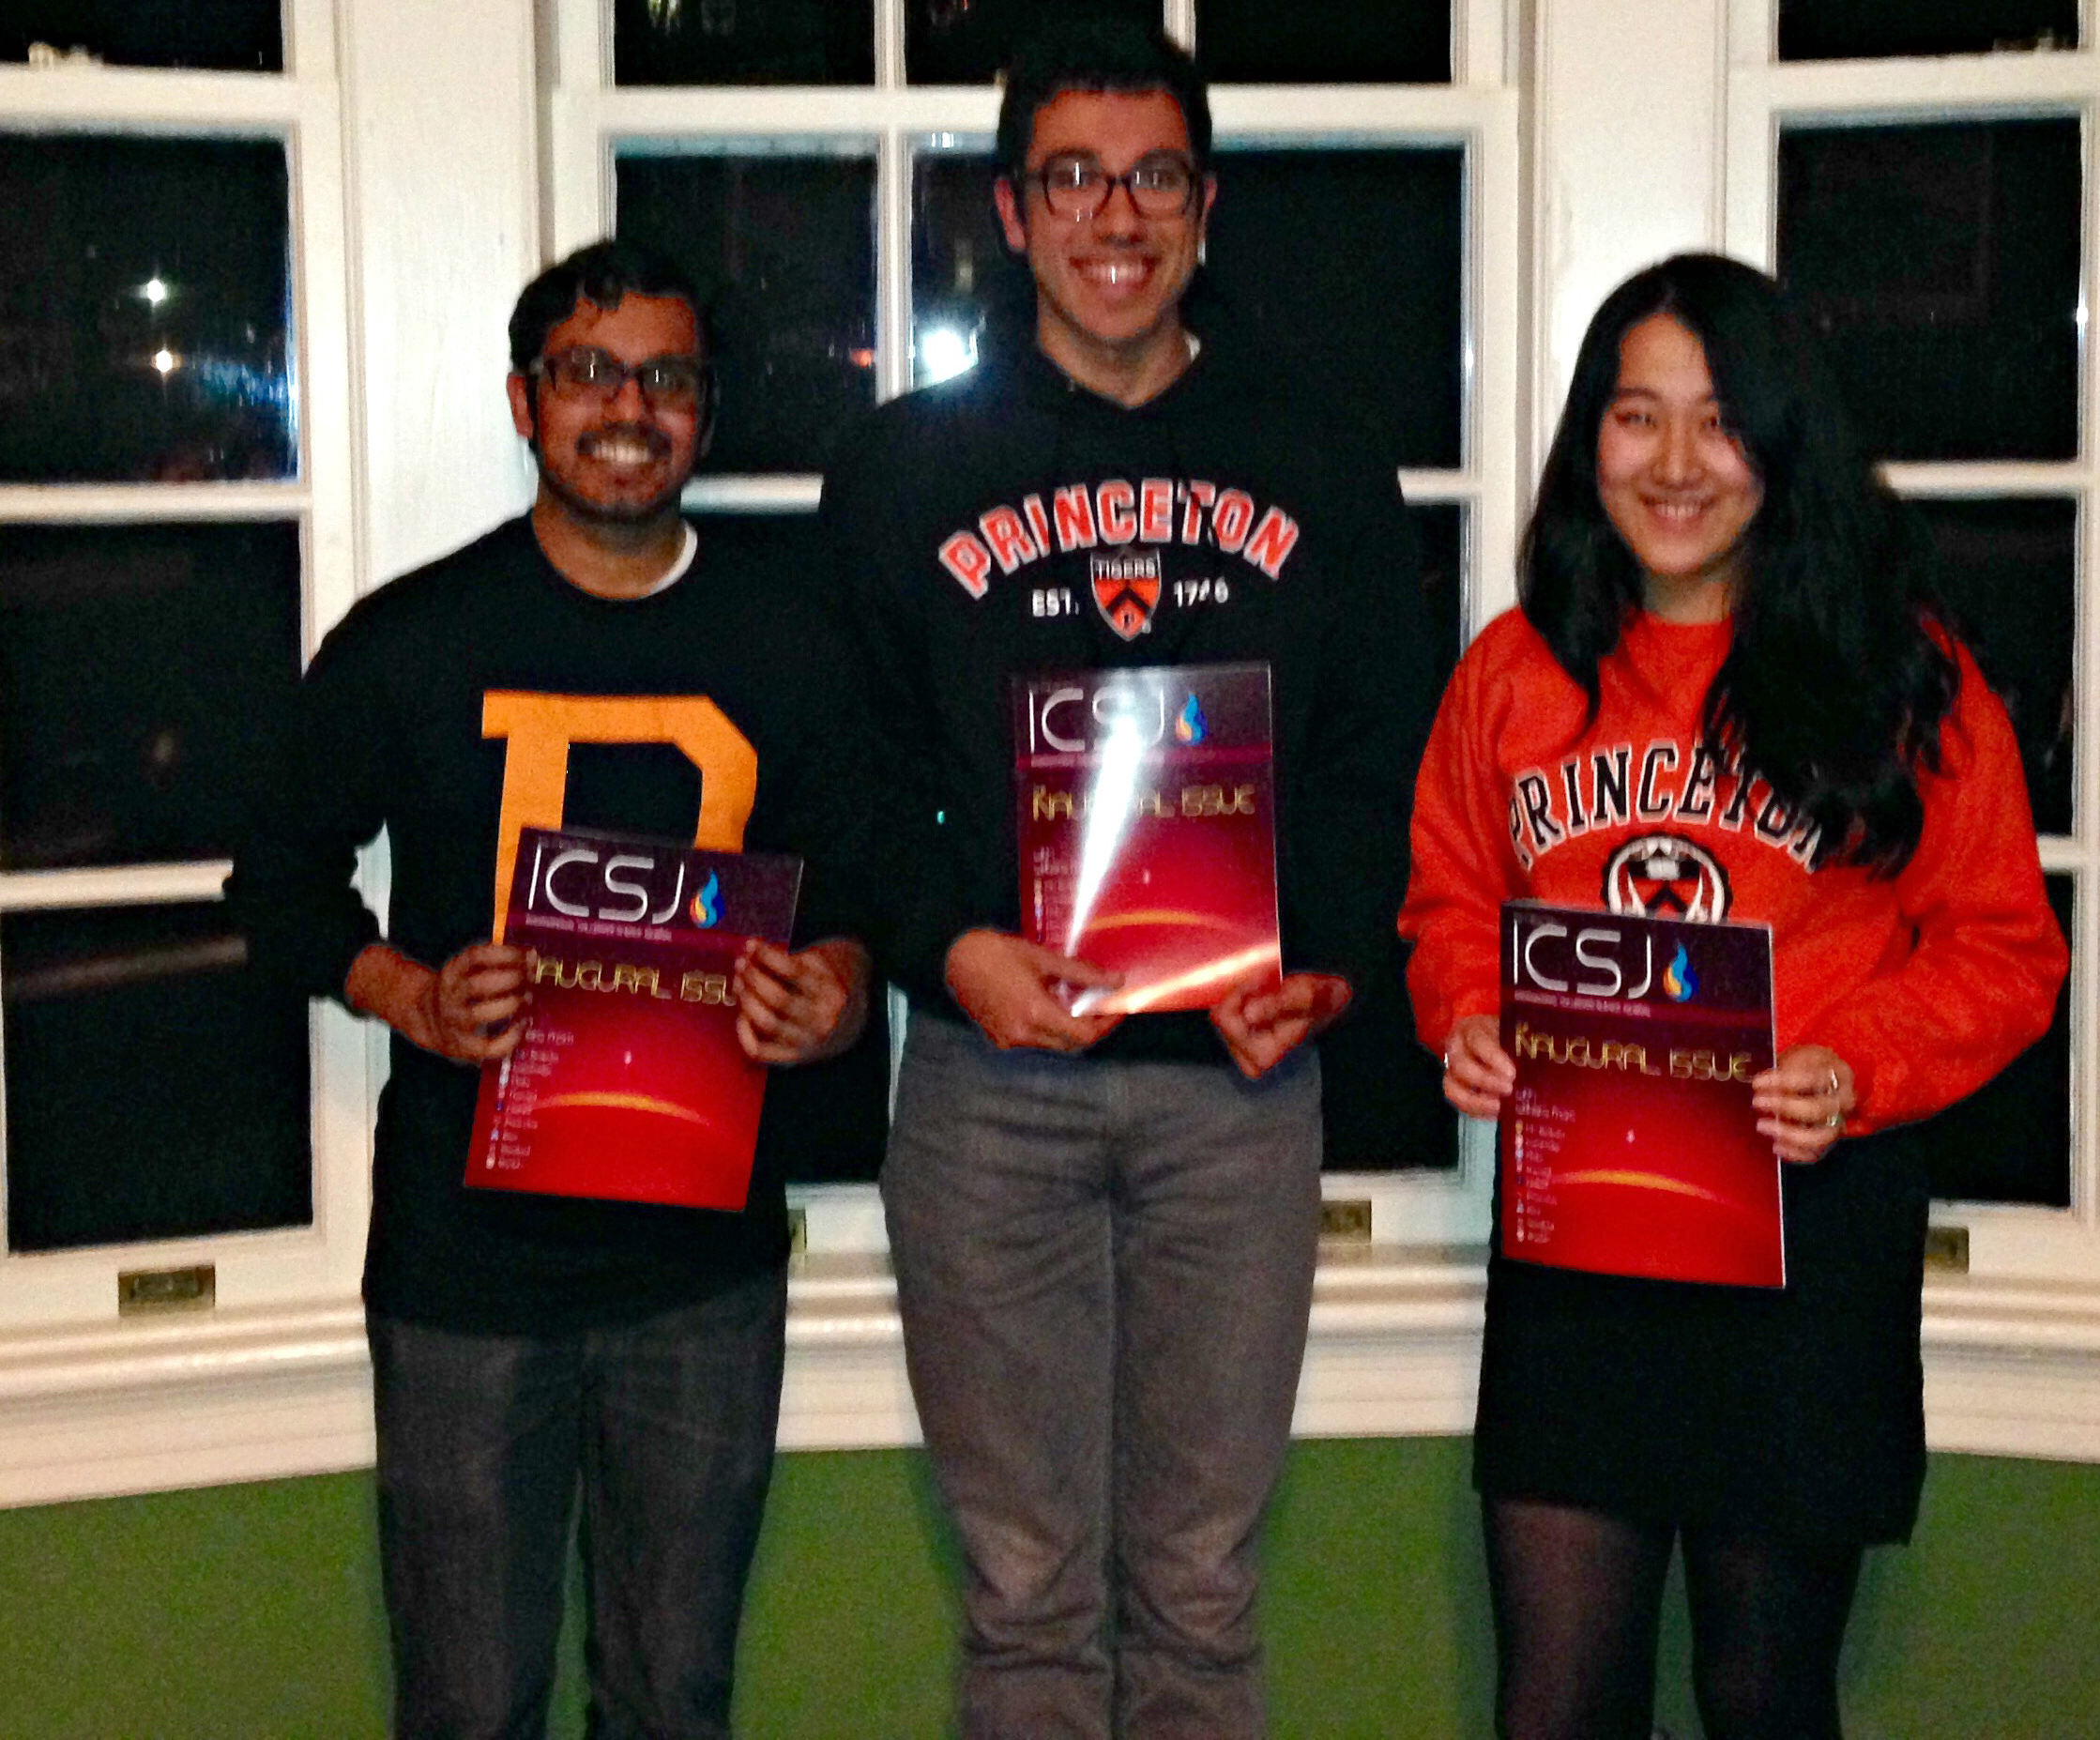 Abrar Choudhury, Stephen Cognetta, and Cissy Chen with their copies of ICSJ at Princeton University